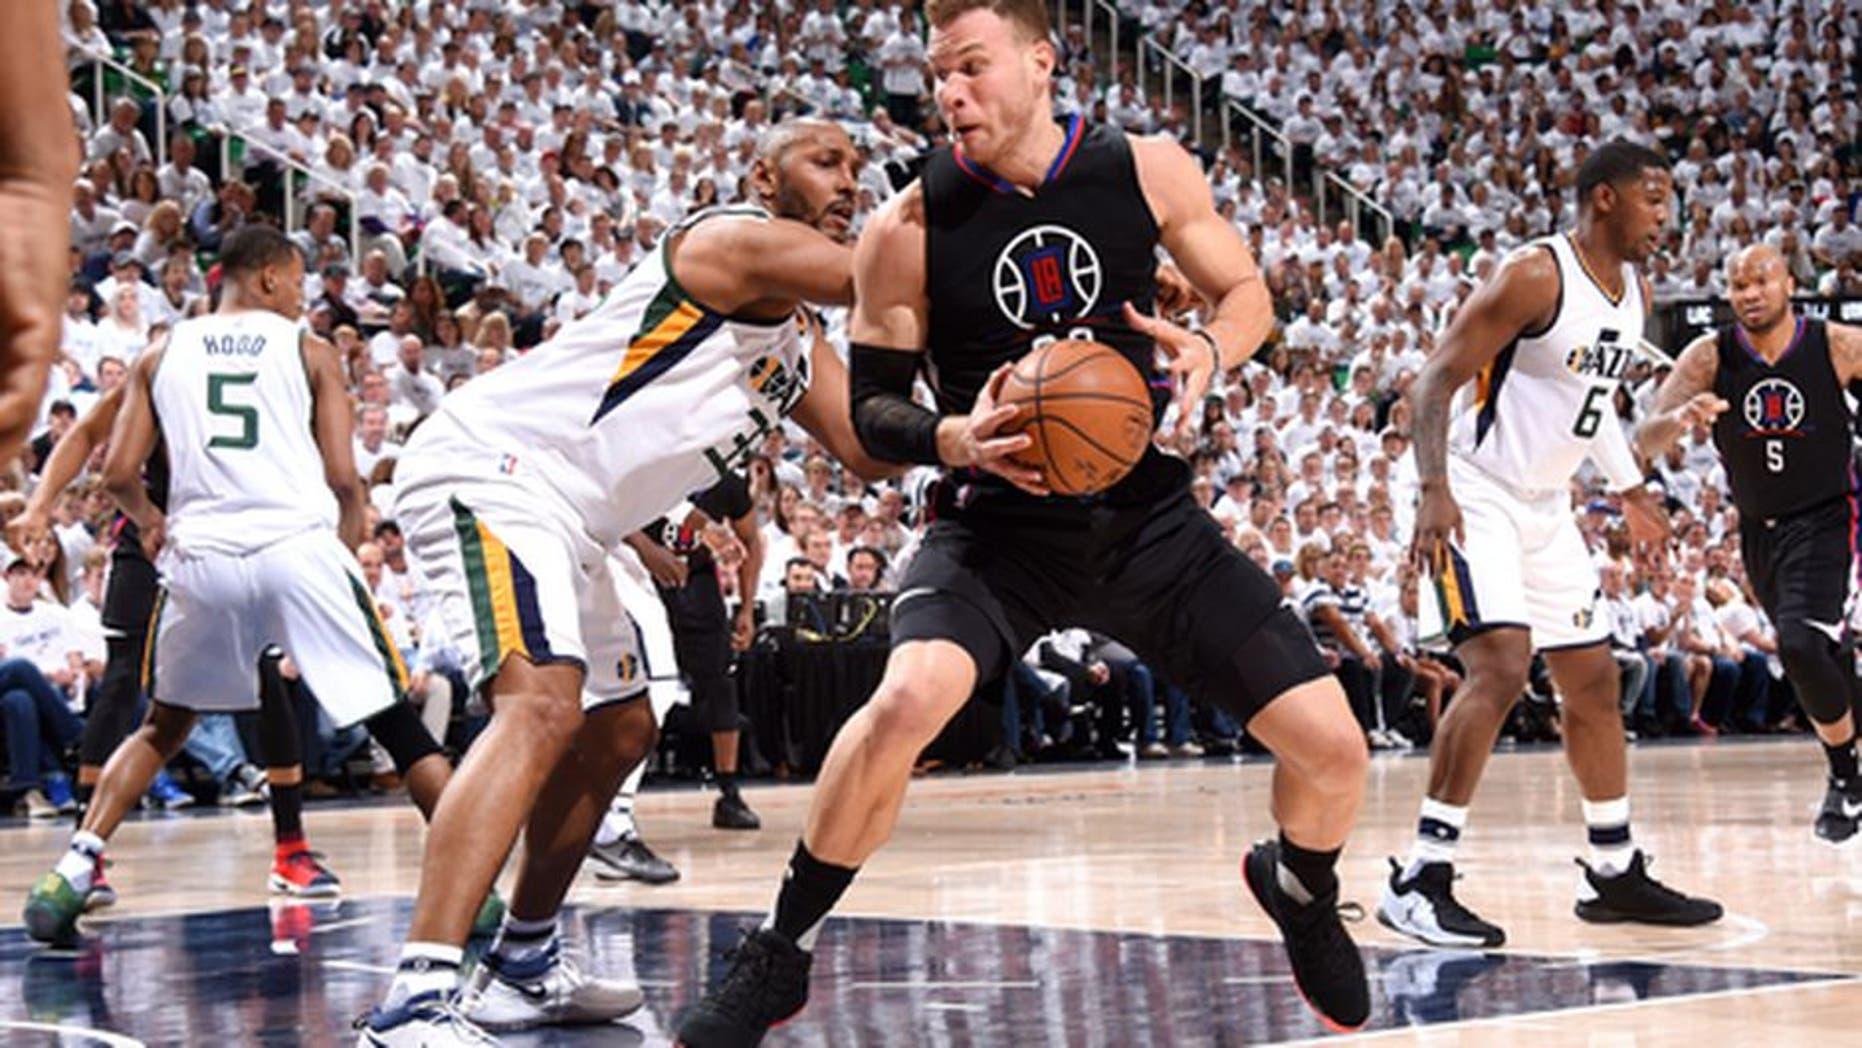 SALT LAKE CITY, UT - APRIL 21: Blake Griffin #32 of the Los Angeles Clippers handles the ball during the game against the Utah Jazz during the Western Conference Quarter-finals of the 2017 NBA Playoffs on April 21, 2017 at Vivint Smart Home Arena in Salt Lake City, Utah. NOTE TO USER: User expressly acknowledges and agrees that, by downloading and or using this Photograph, User is consenting to the terms and conditions of the Getty Images License Agreement. Mandatory Copyright Notice: Copyright 2017 NBAE (Photo by Andrew D. Bernstein/NBAE via Getty Images)